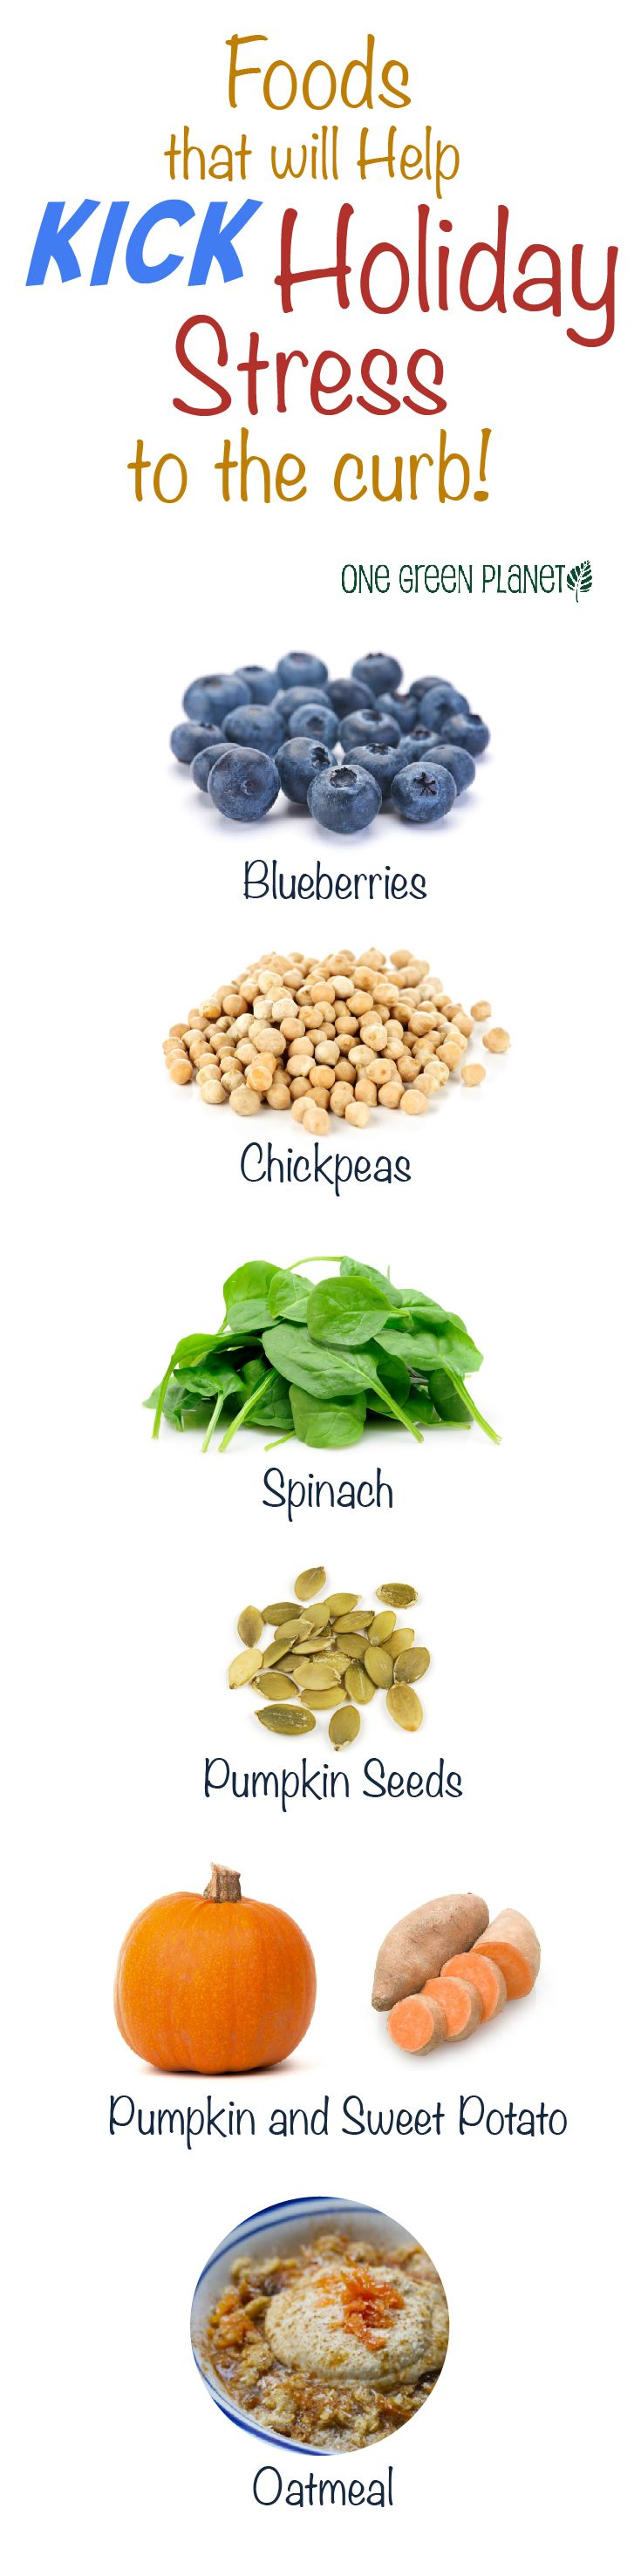 Foods that Help Kick Stress to the Curb.